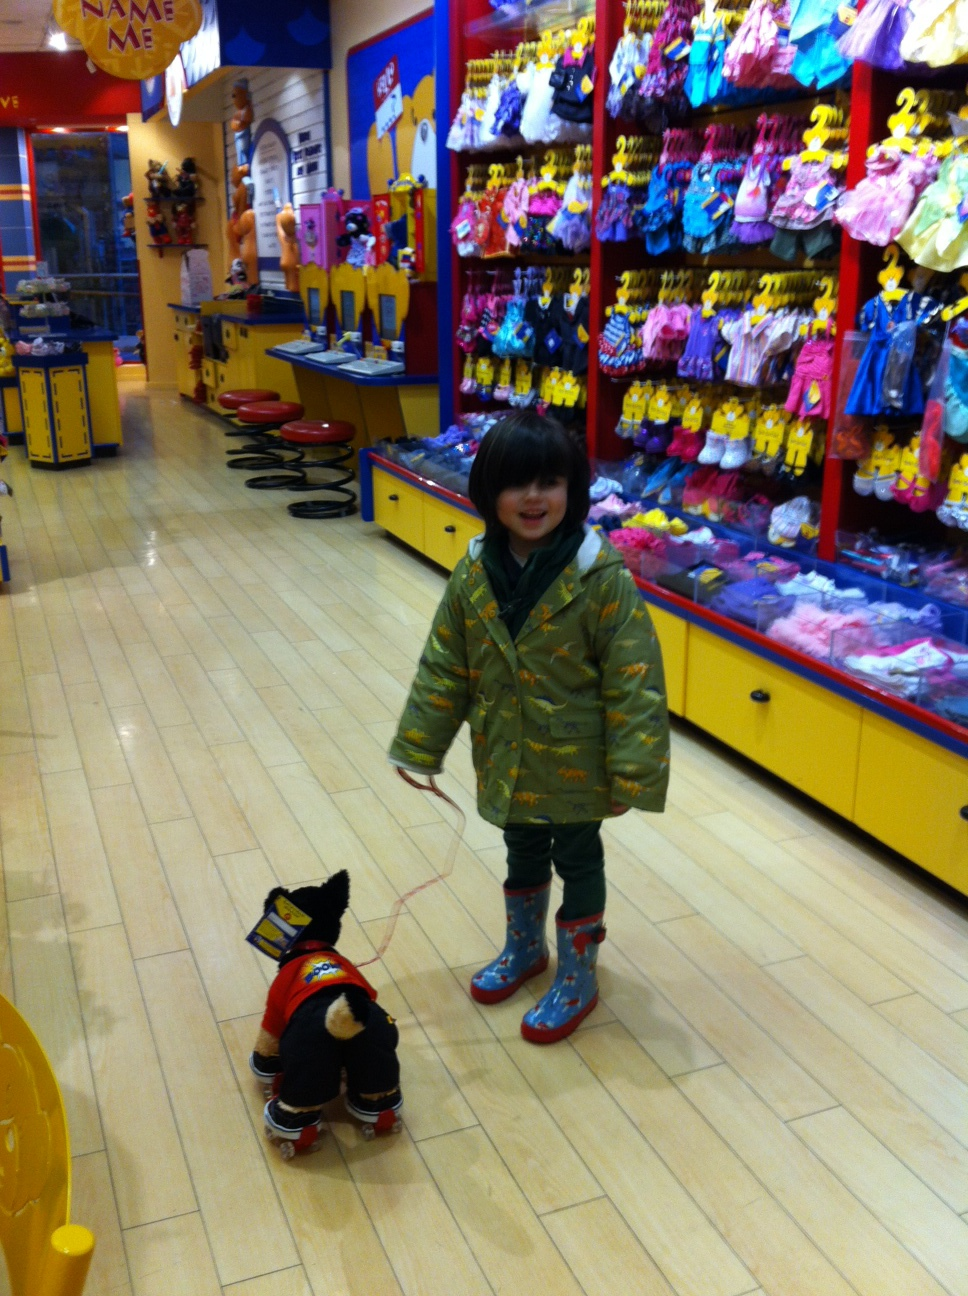 The World of Kitsch have a Build-a-Bear Workshop Experience